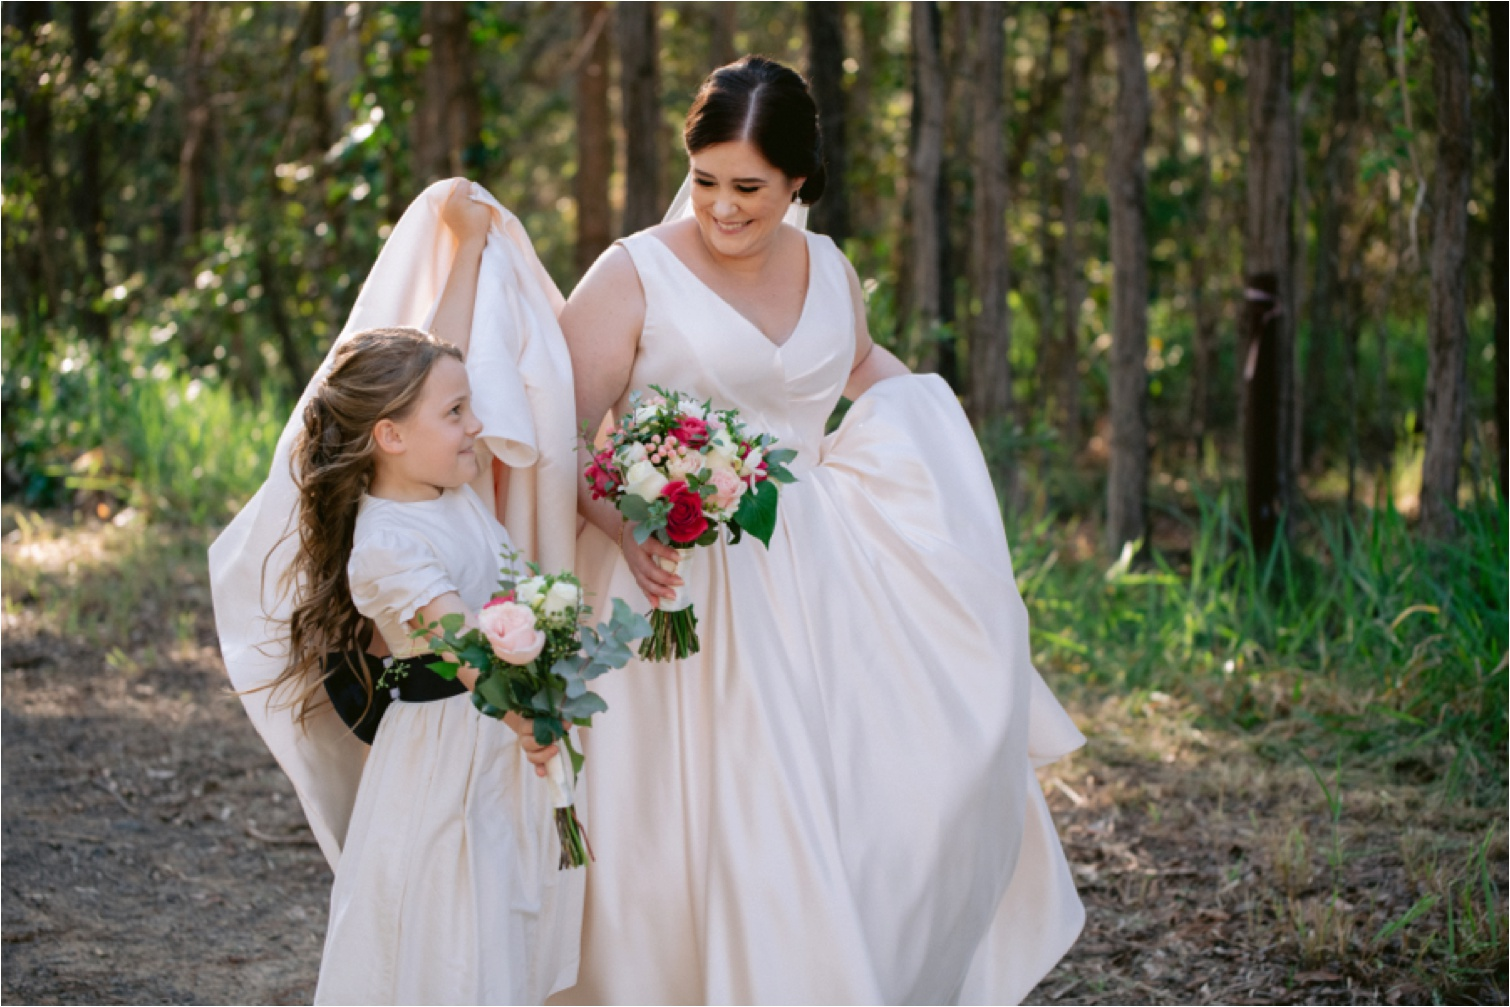 Flower_girl_helping_with_dress_photo